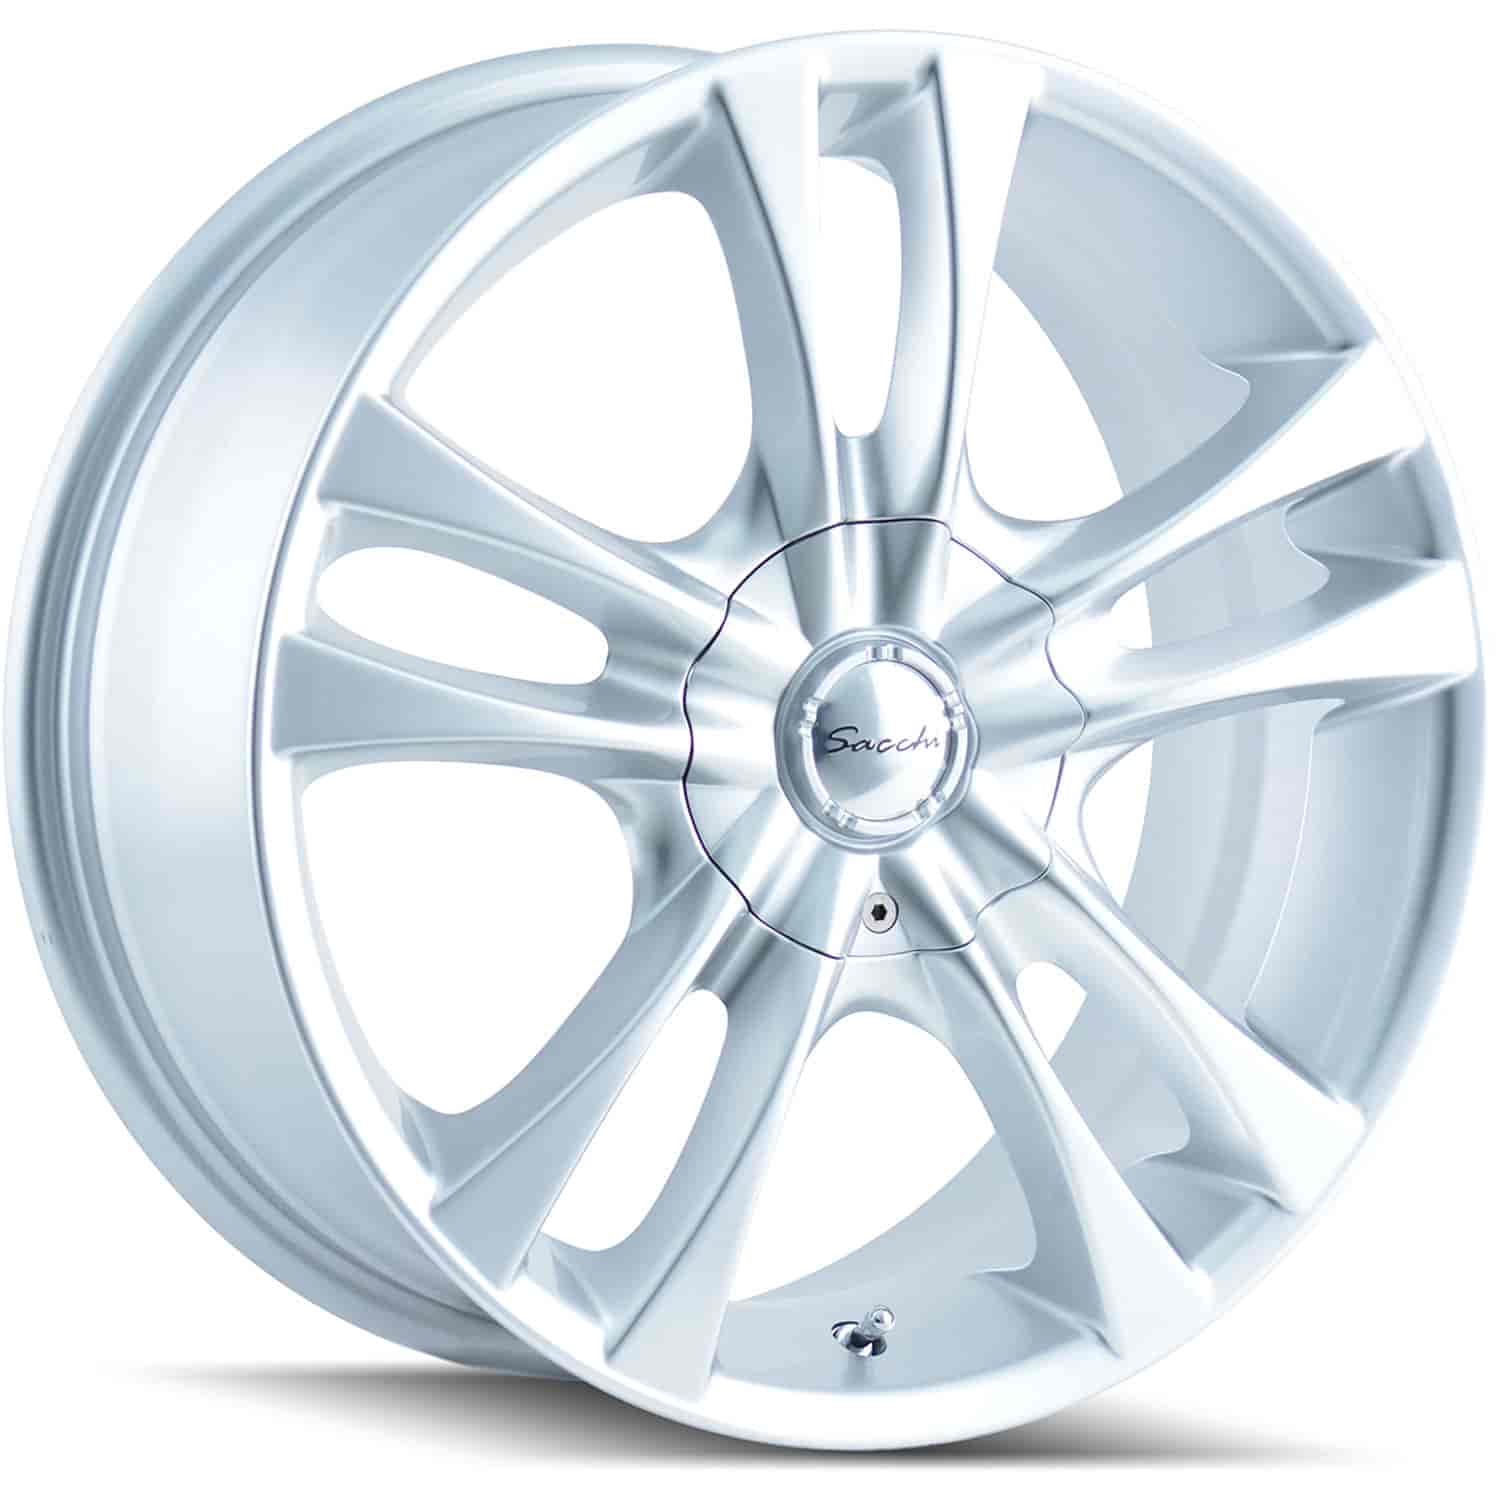 The Wheel Group 220-6720S